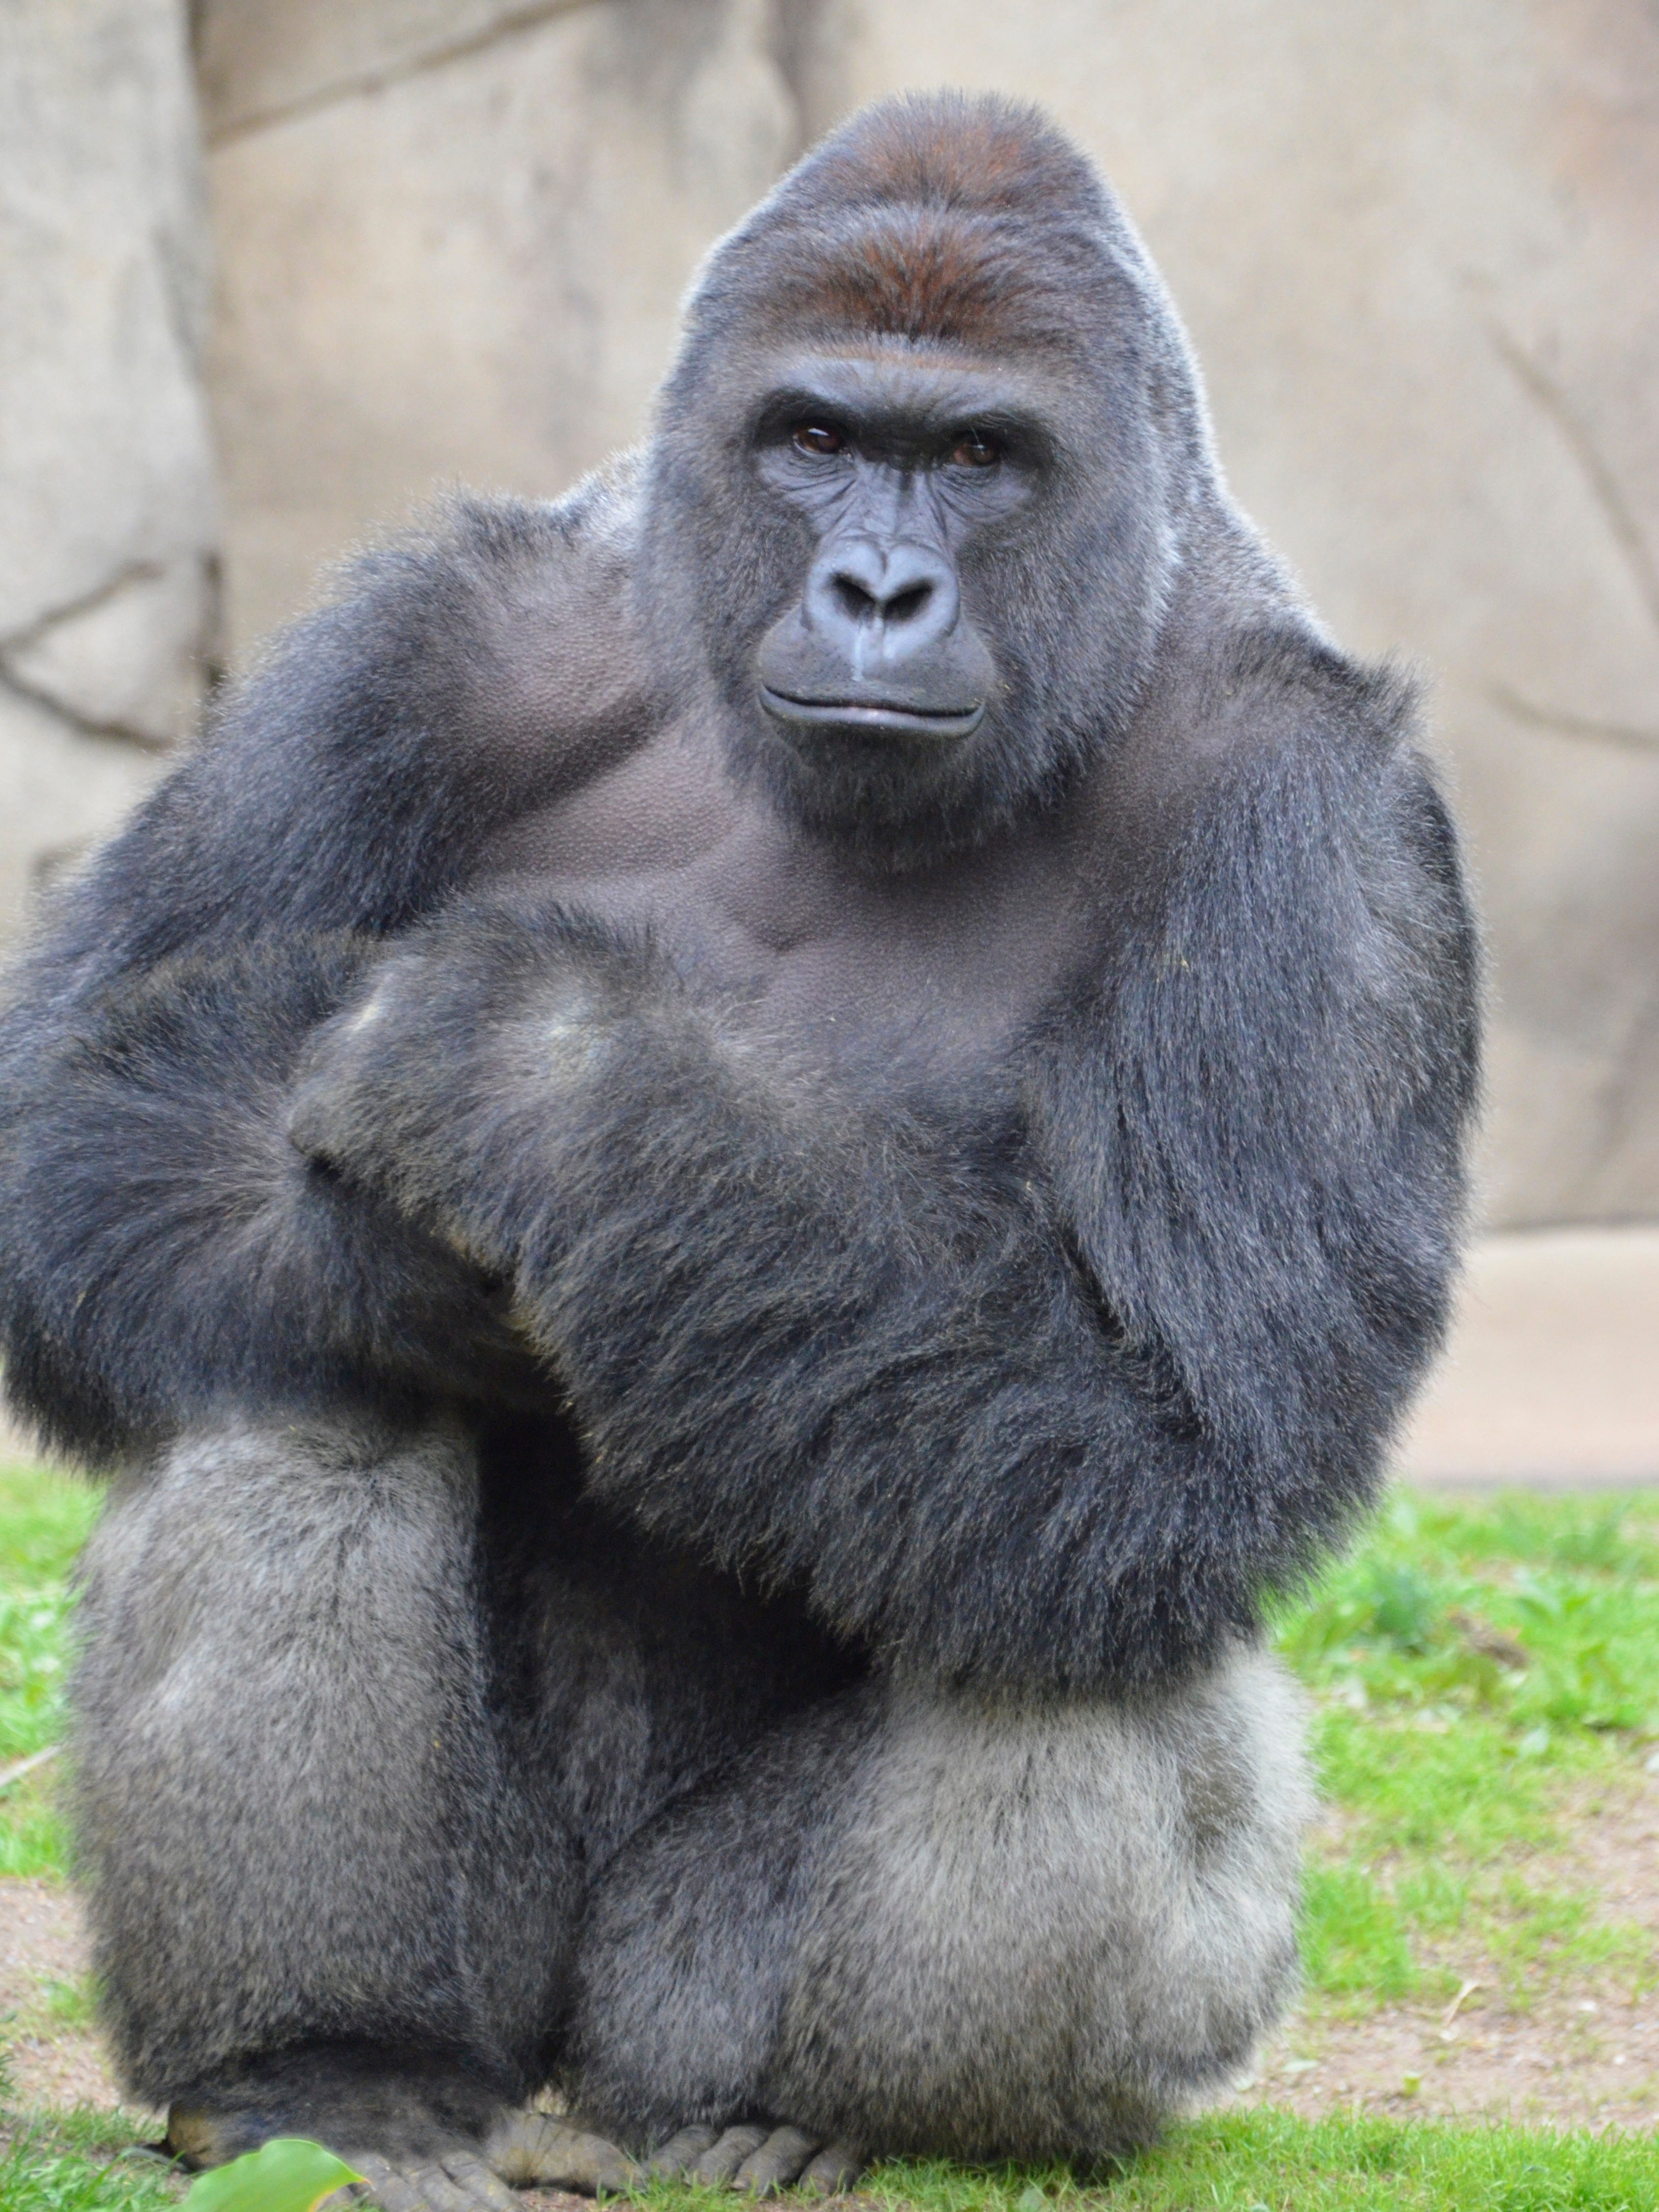 Zoo doesn't see backlash at gate after Harambe's death